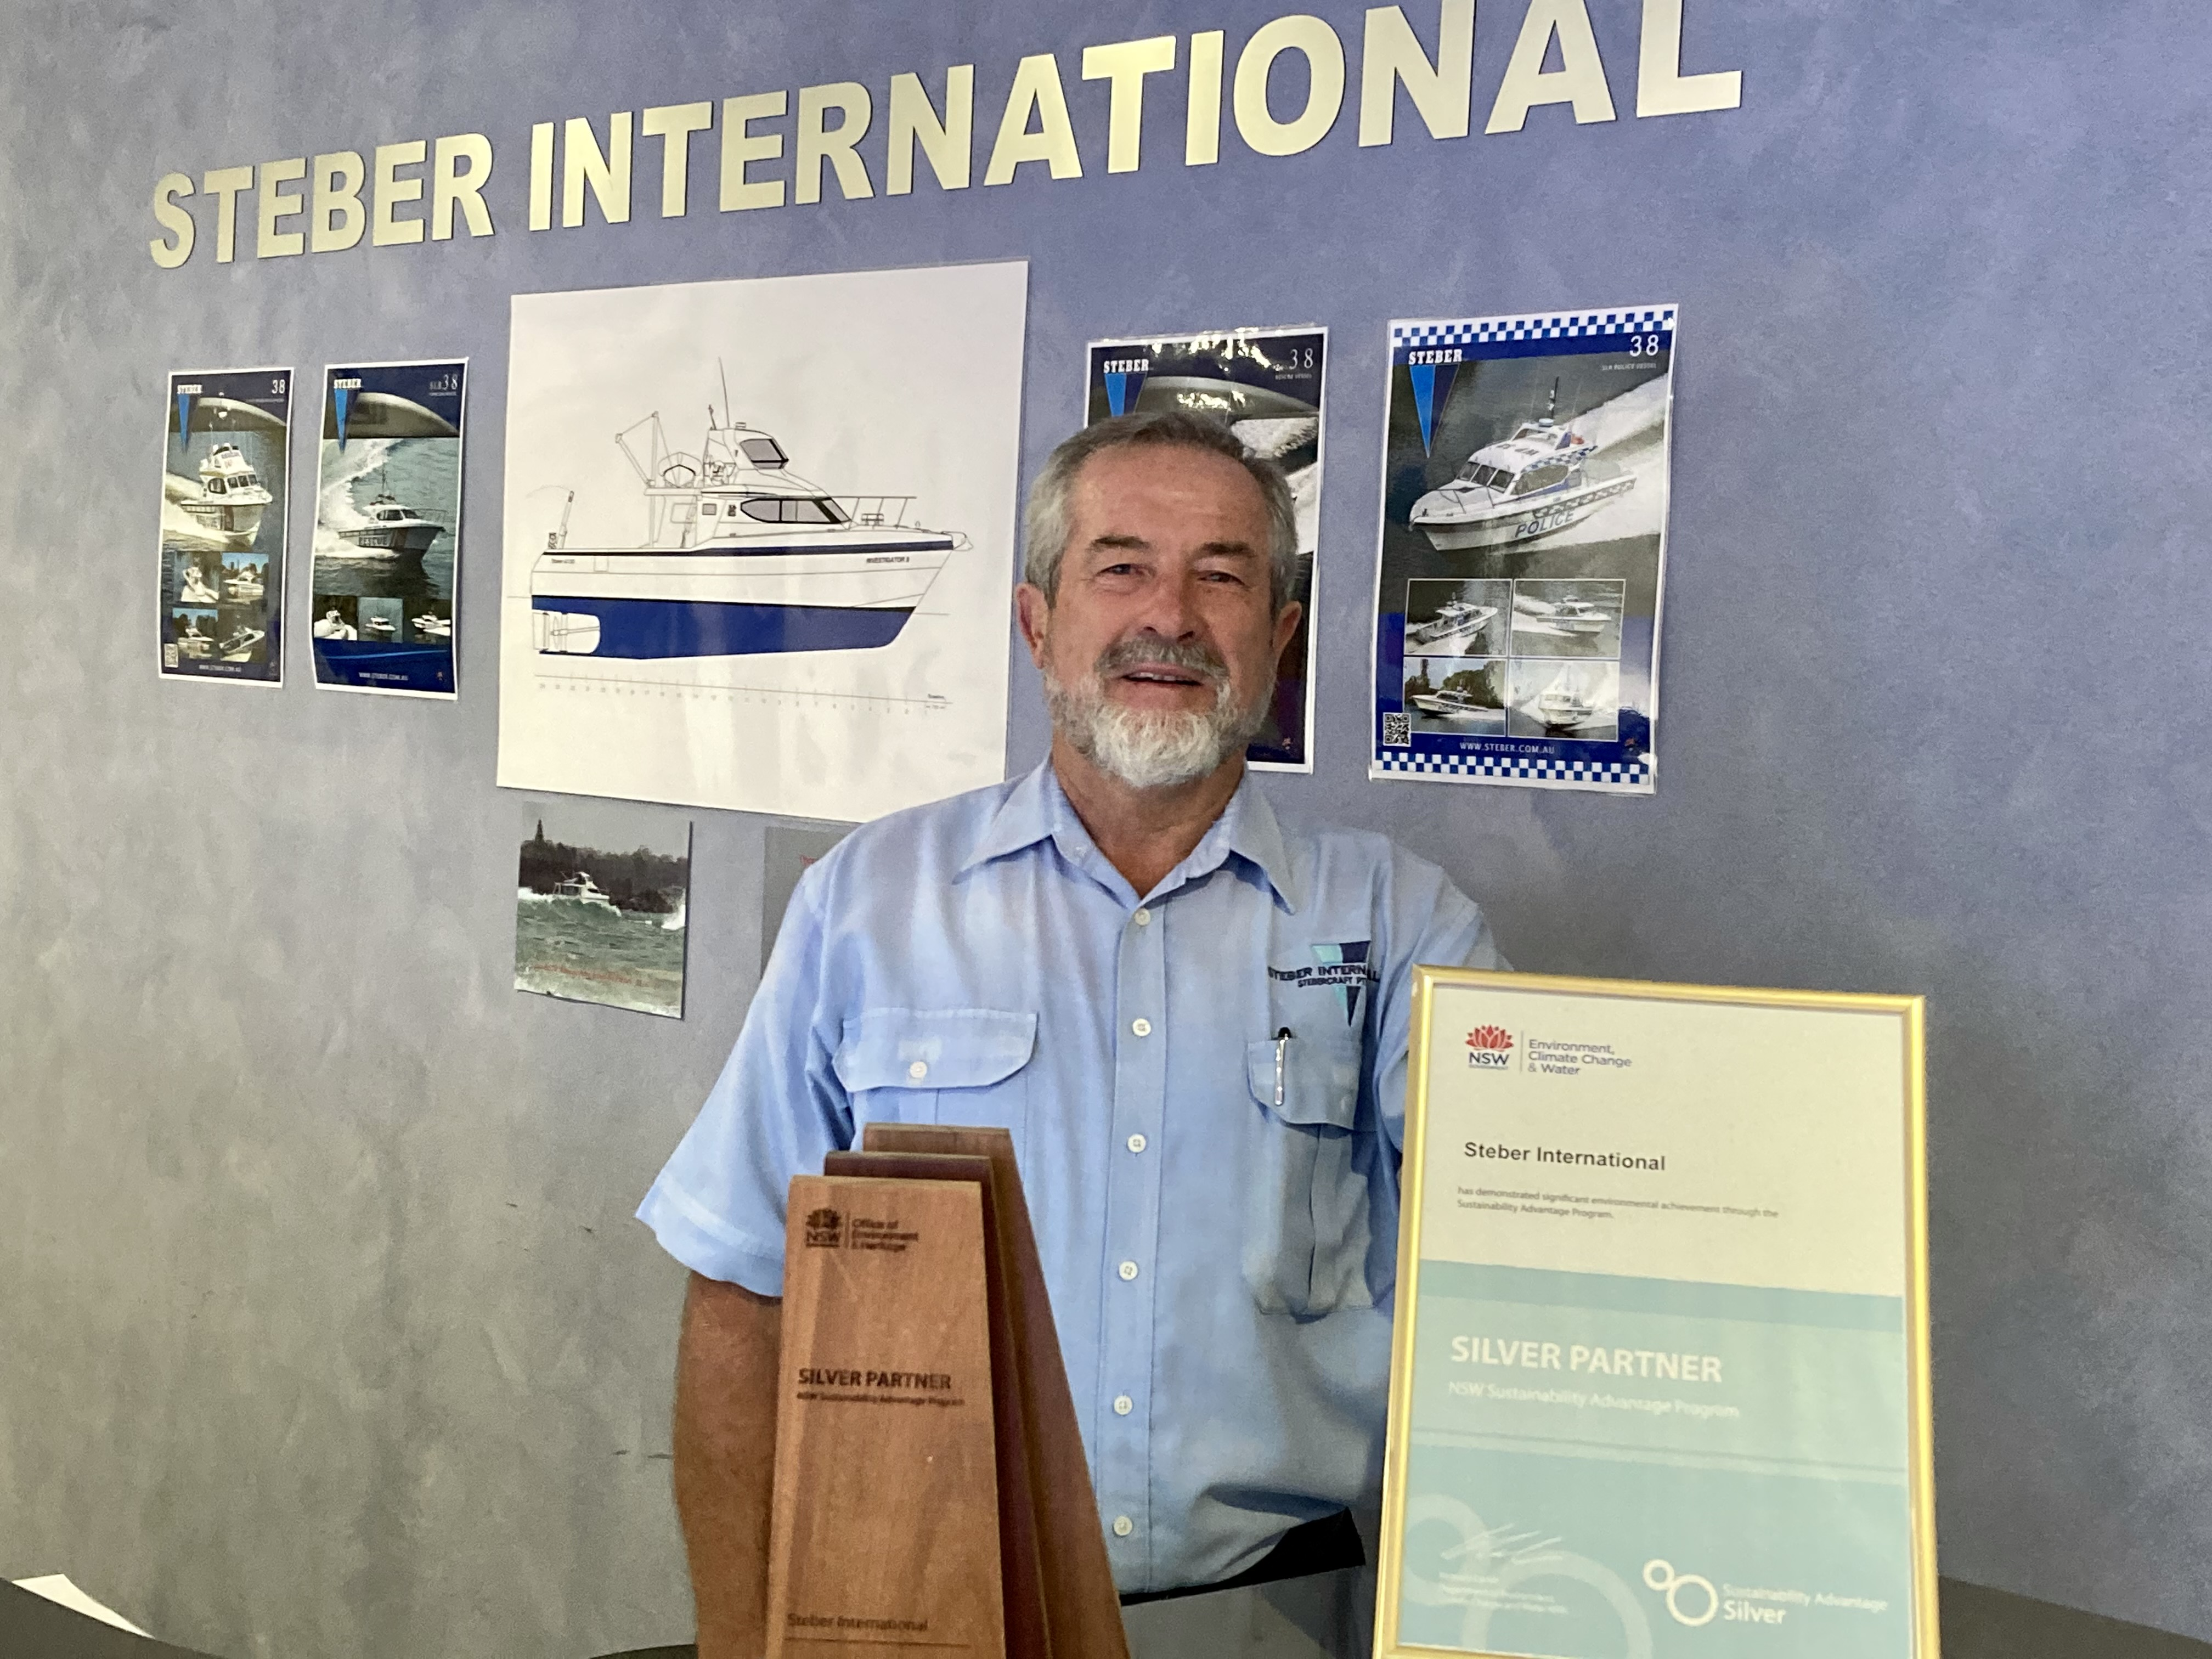 Steber International strives to maintain competitive edge